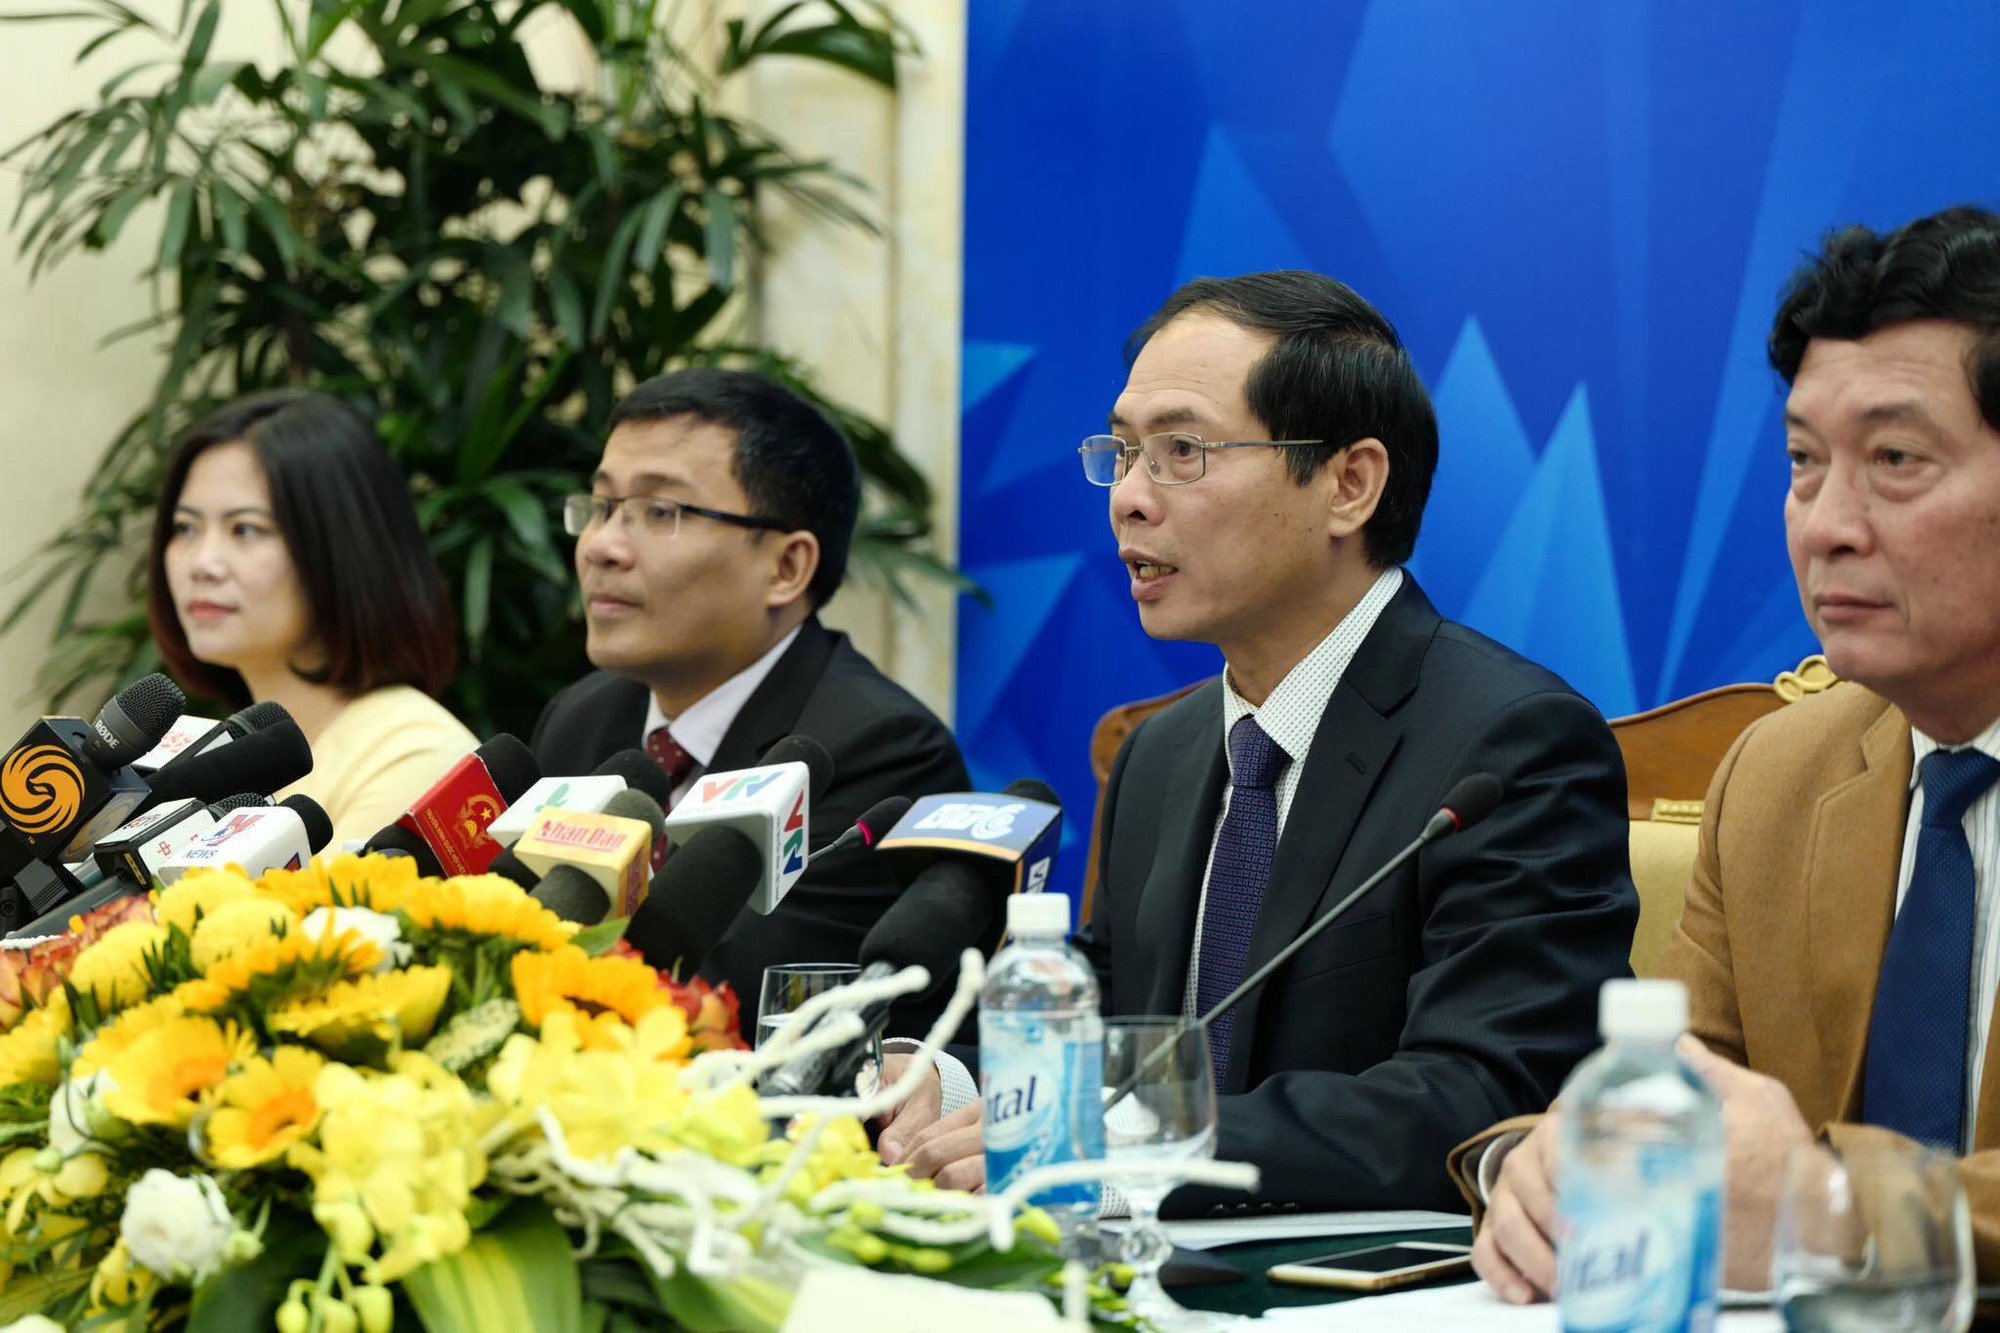 Press conference for APEC summit week convened in Da Nang